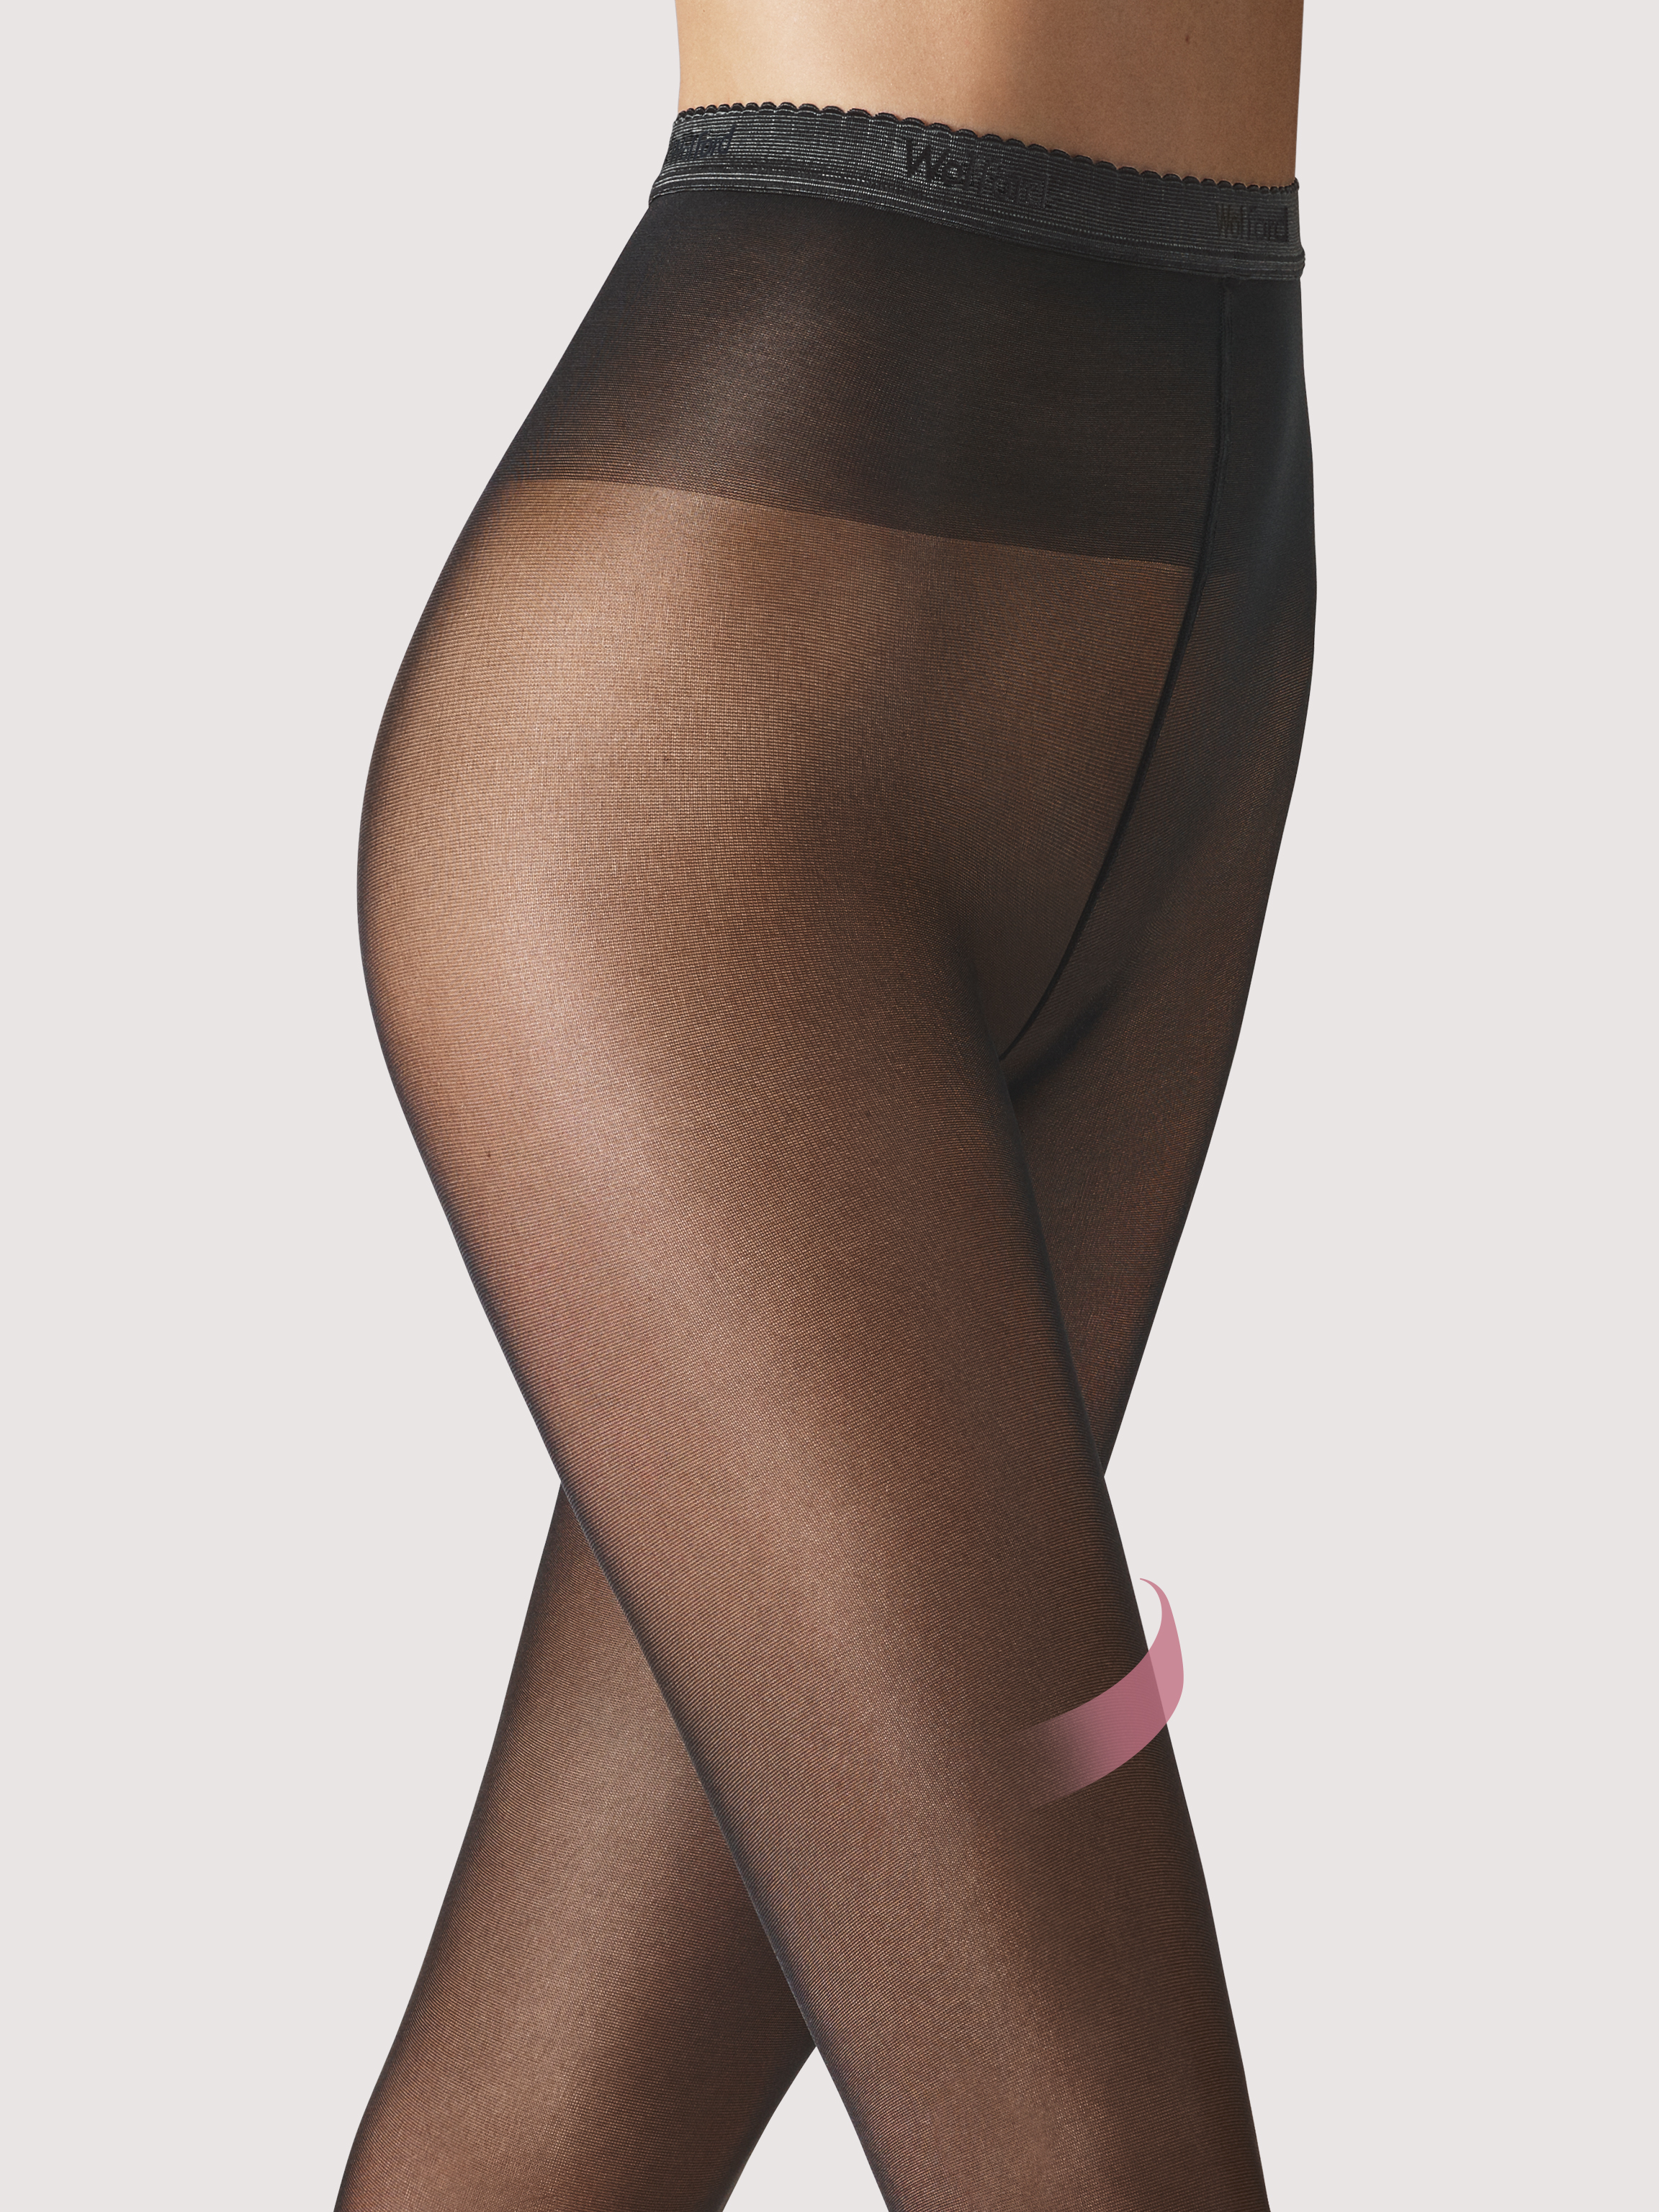 Rosemary 40 leg support Tights - nearly black - L | Sportbekleidung > Sporthosen | Wolford